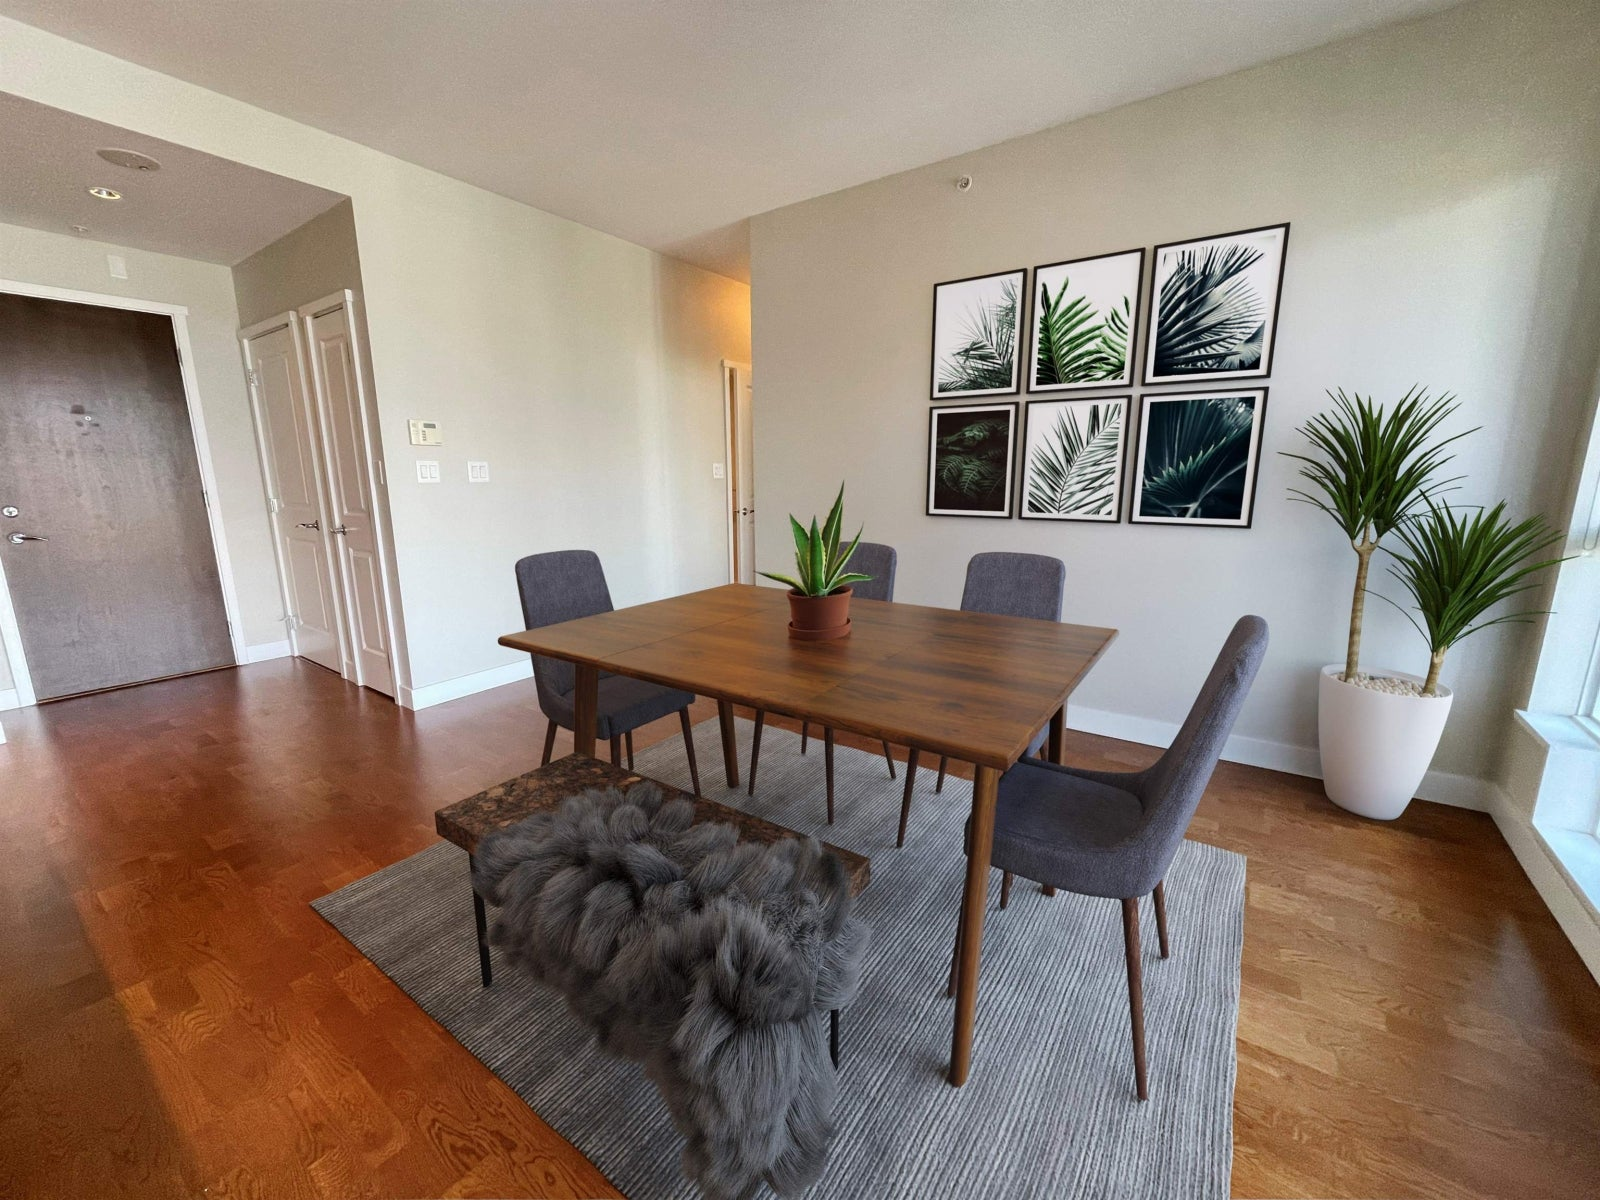 803 1333 W 11TH AVENUE - Fairview VW Apartment/Condo for sale, 2 Bedrooms (R2616288) #7